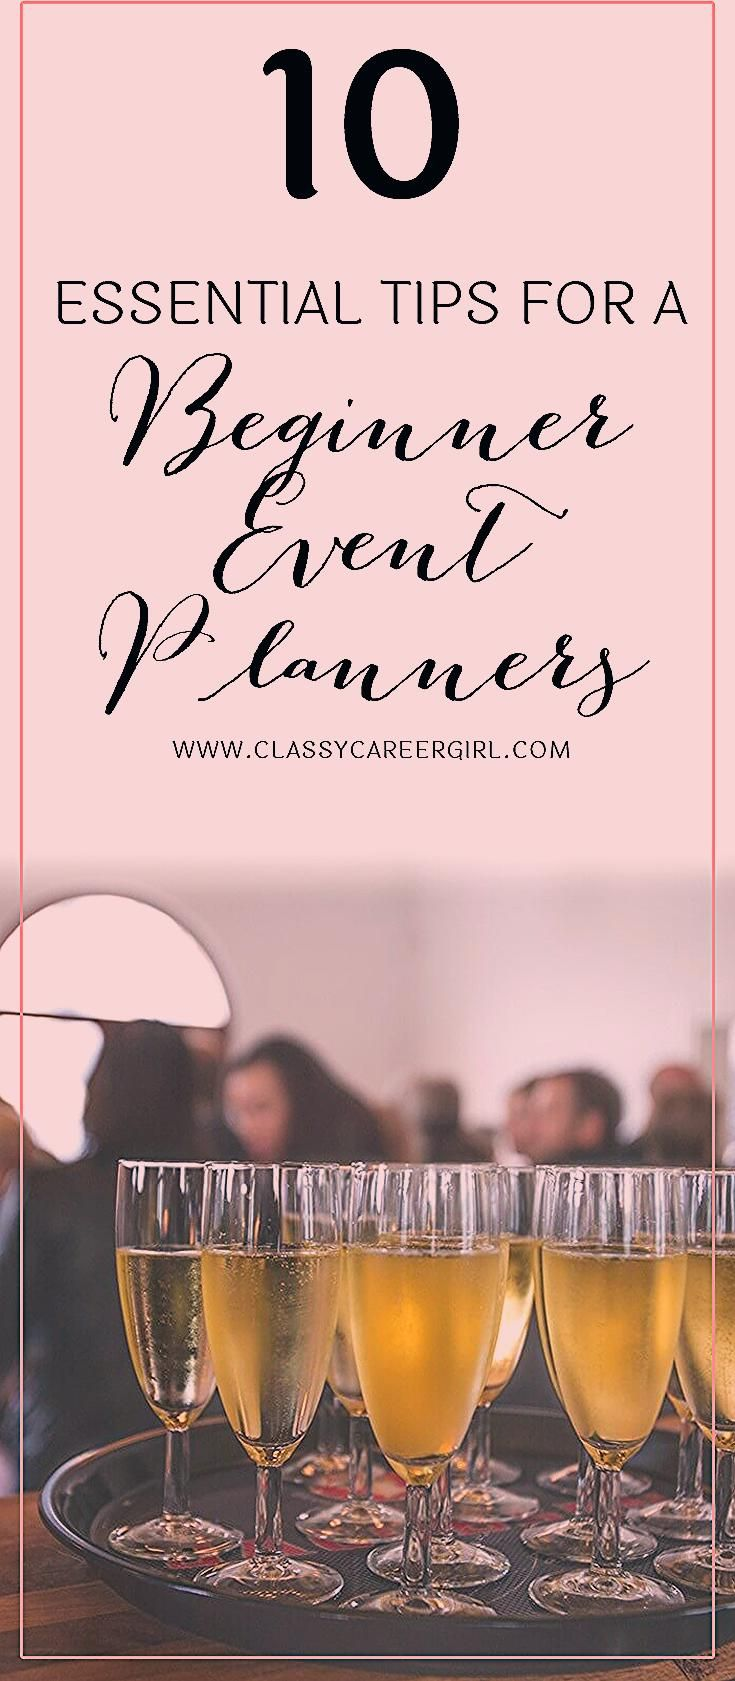 Photo of 10 Essential Tips for a Beginner Event Planner